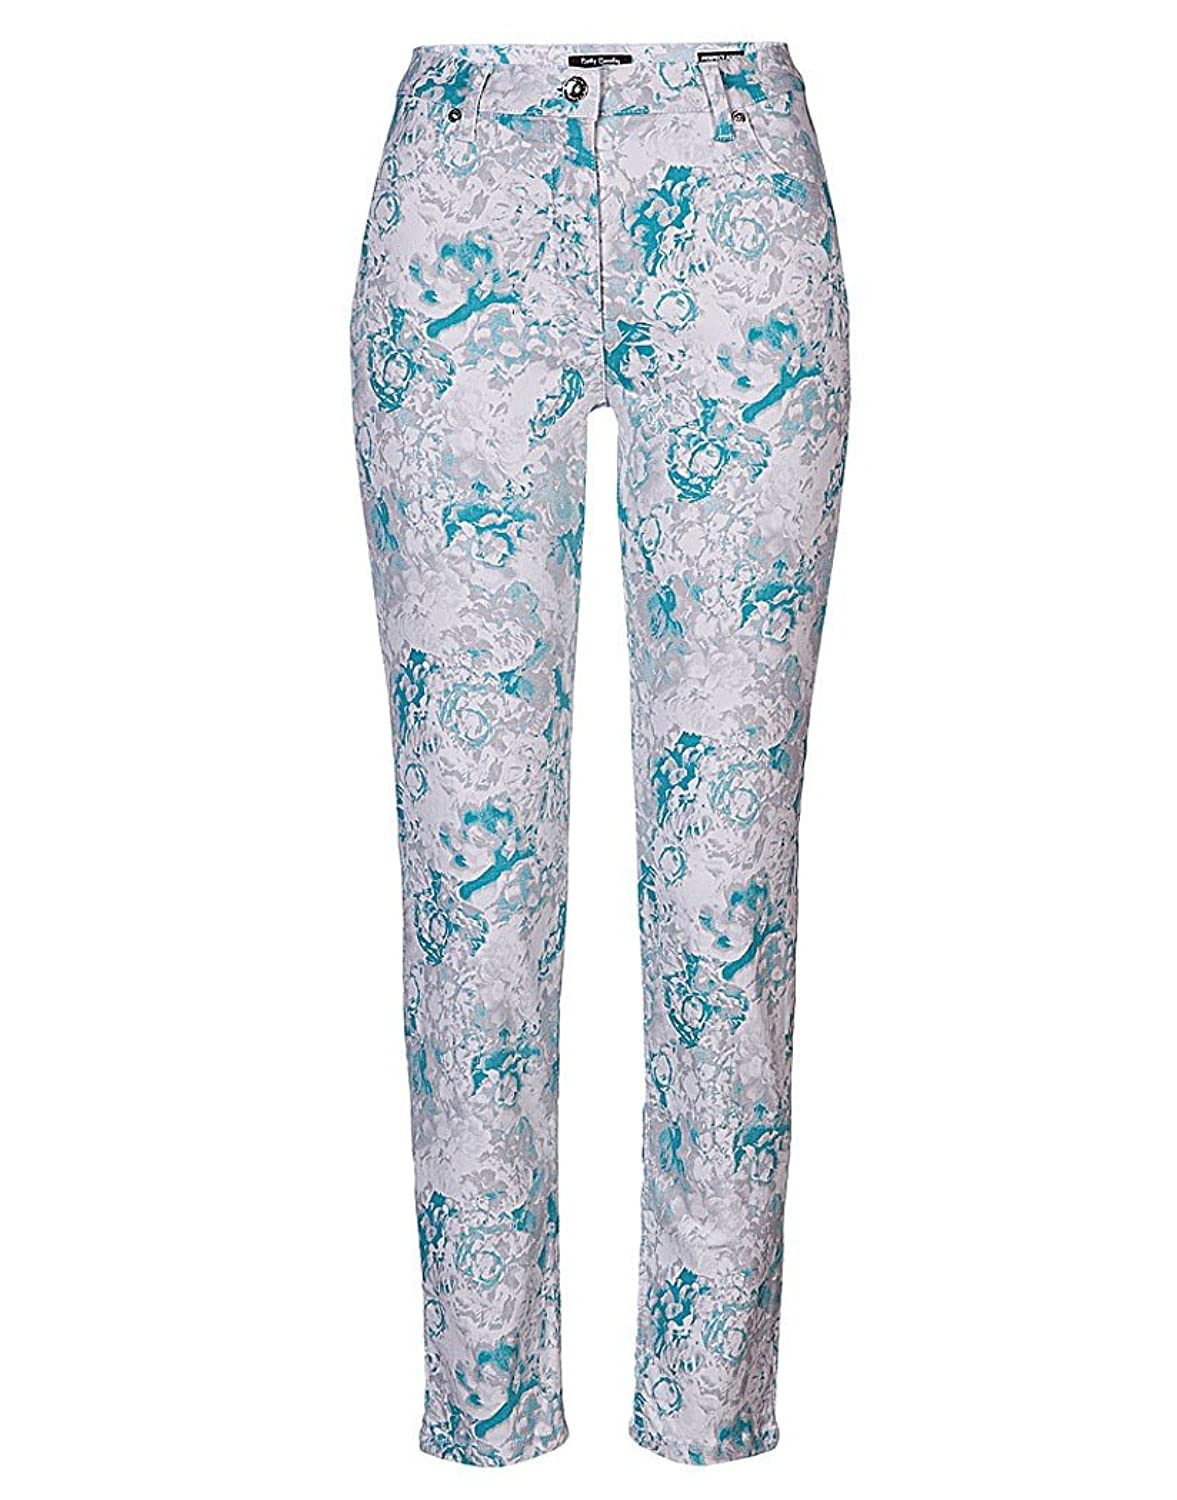 White Betty Barclay Women's Printed Trousers - White